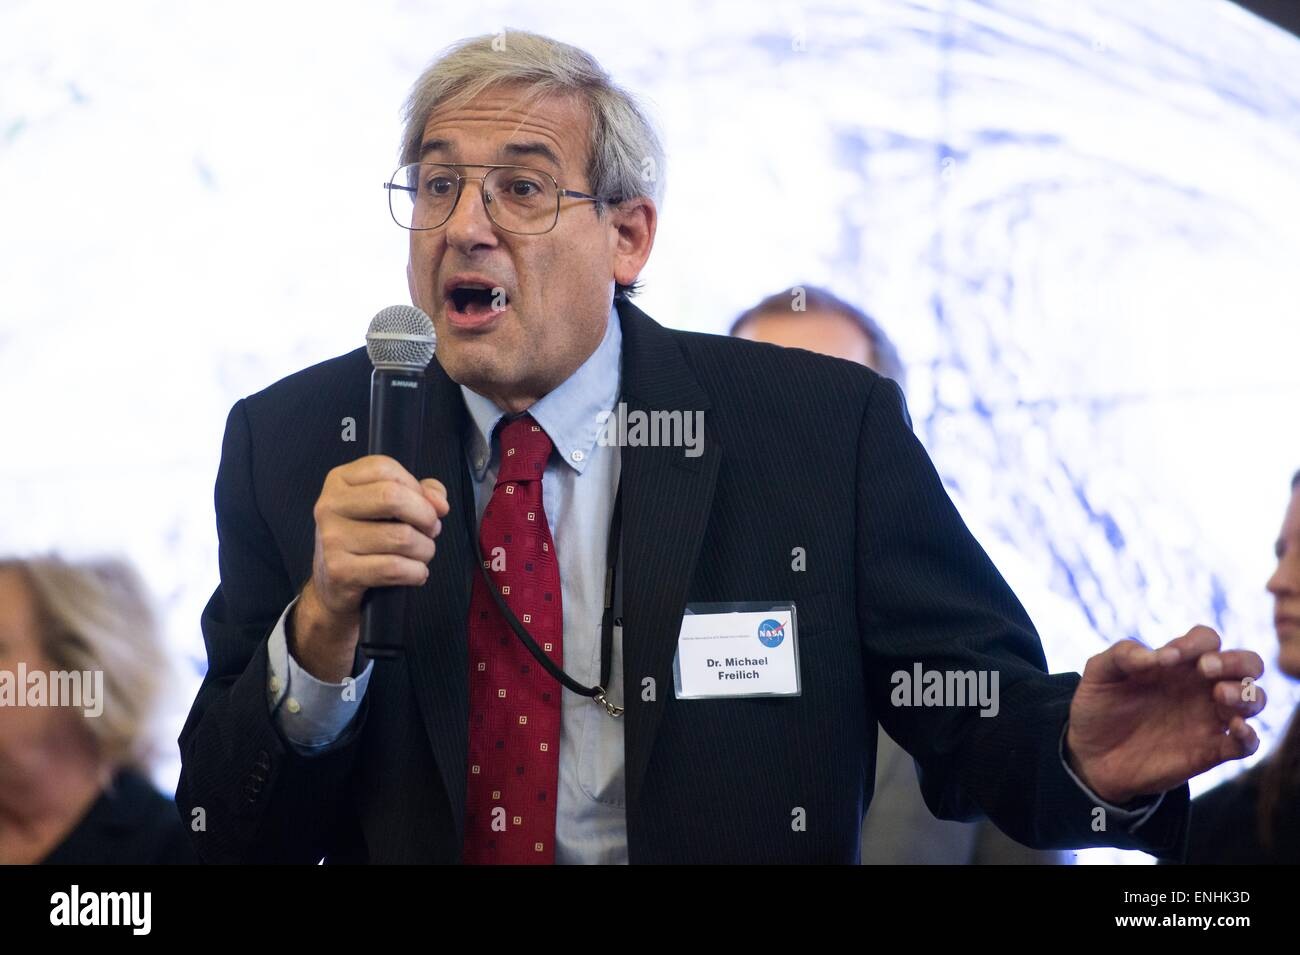 NASA Director of Earth Science Dr. Michael Freilich speaks during an Earth Day event at Union Station April 22, - Stock Image